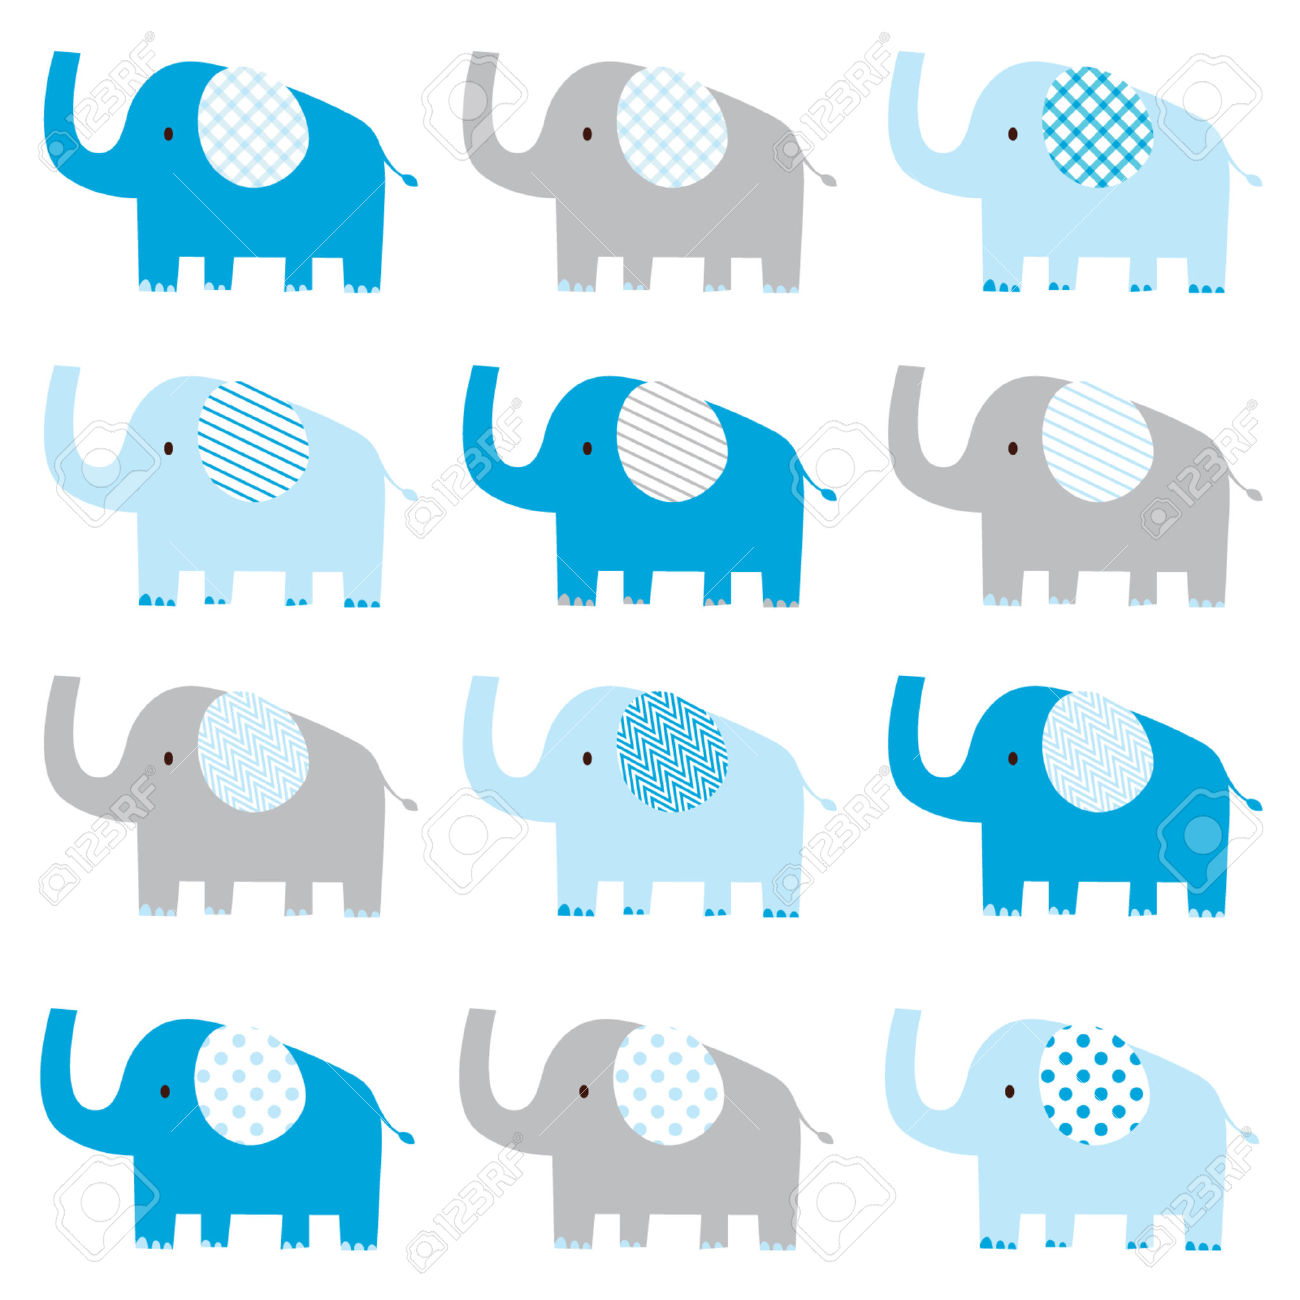 Cute baby clipart patterns clip transparent stock Cute Baby Boy Elephant Pattern Royalty Free Cliparts, Vectors, And ... clip transparent stock